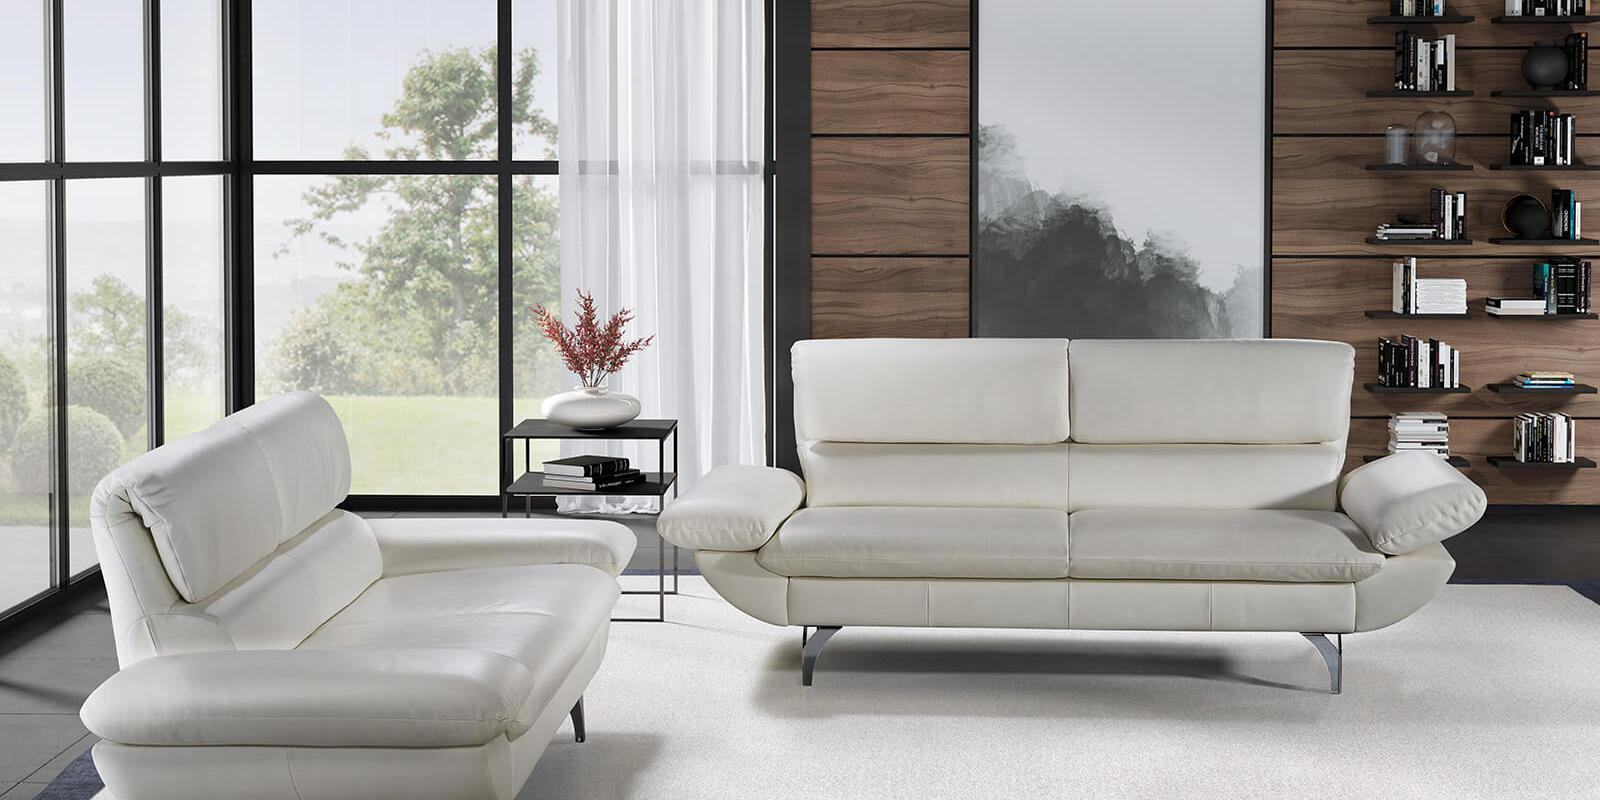 horst collection malix sofa design moebel weiss leder